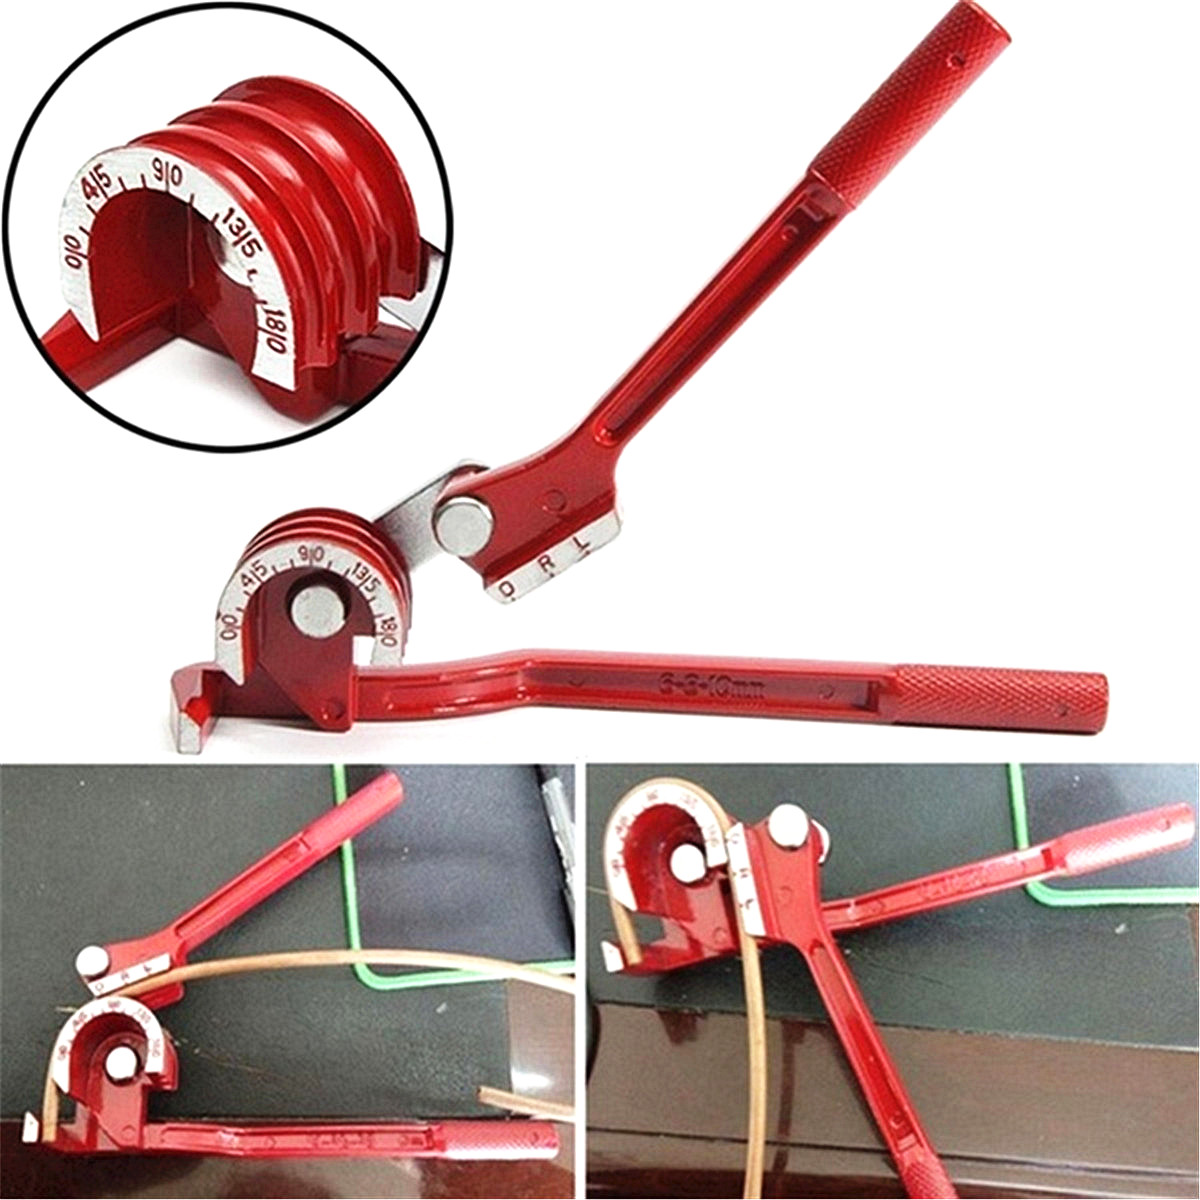 Hand Held Pipe Bender 0-180° Heavy Duty Bends 6,8,10mm Copper Pipes and Tubing